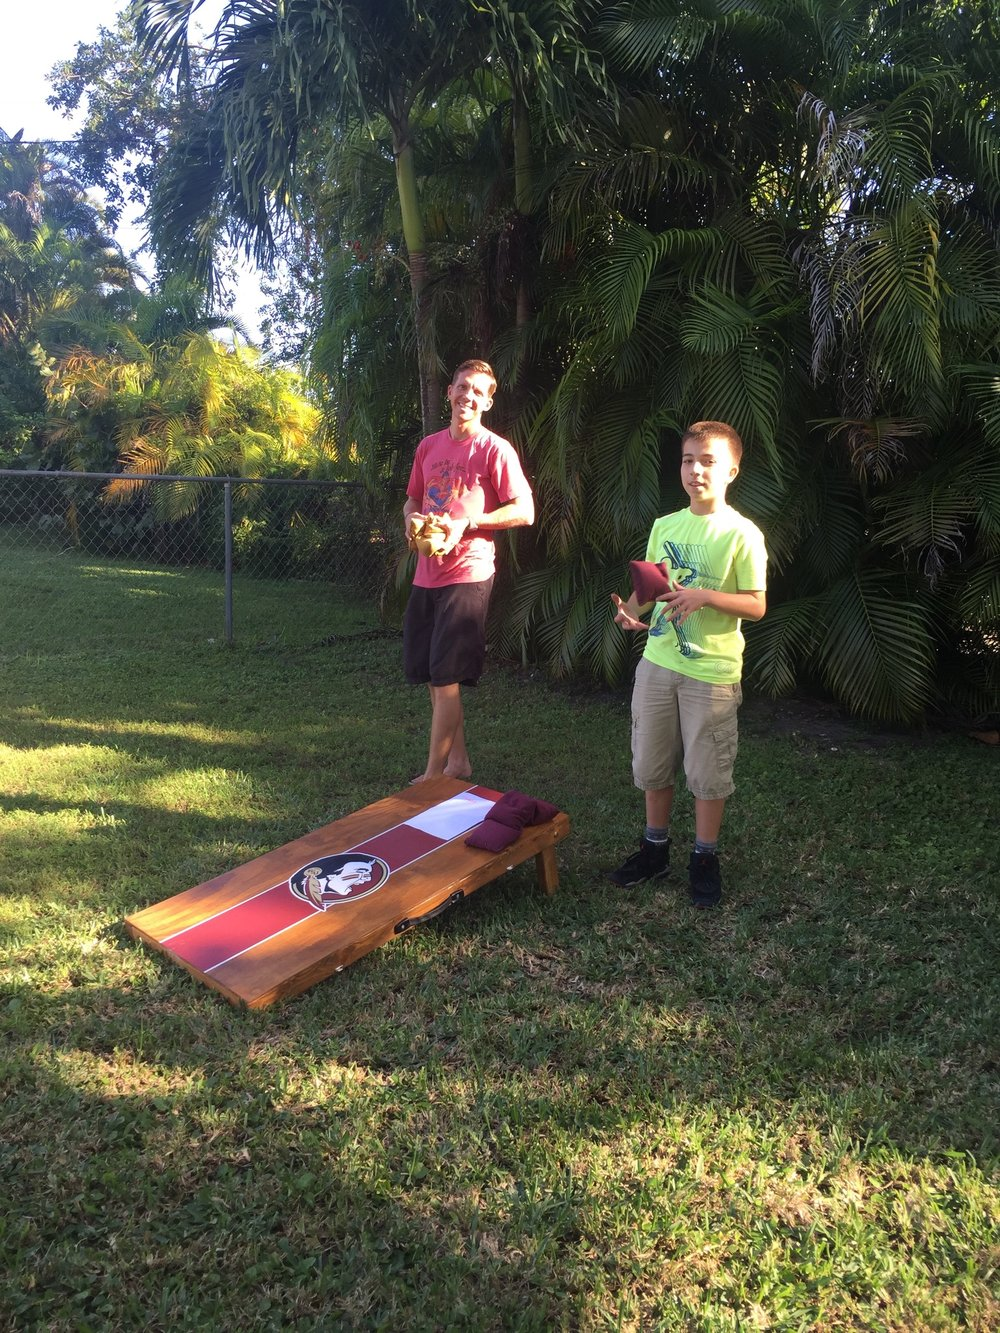 Cornhole in the backyard. Barefoot!